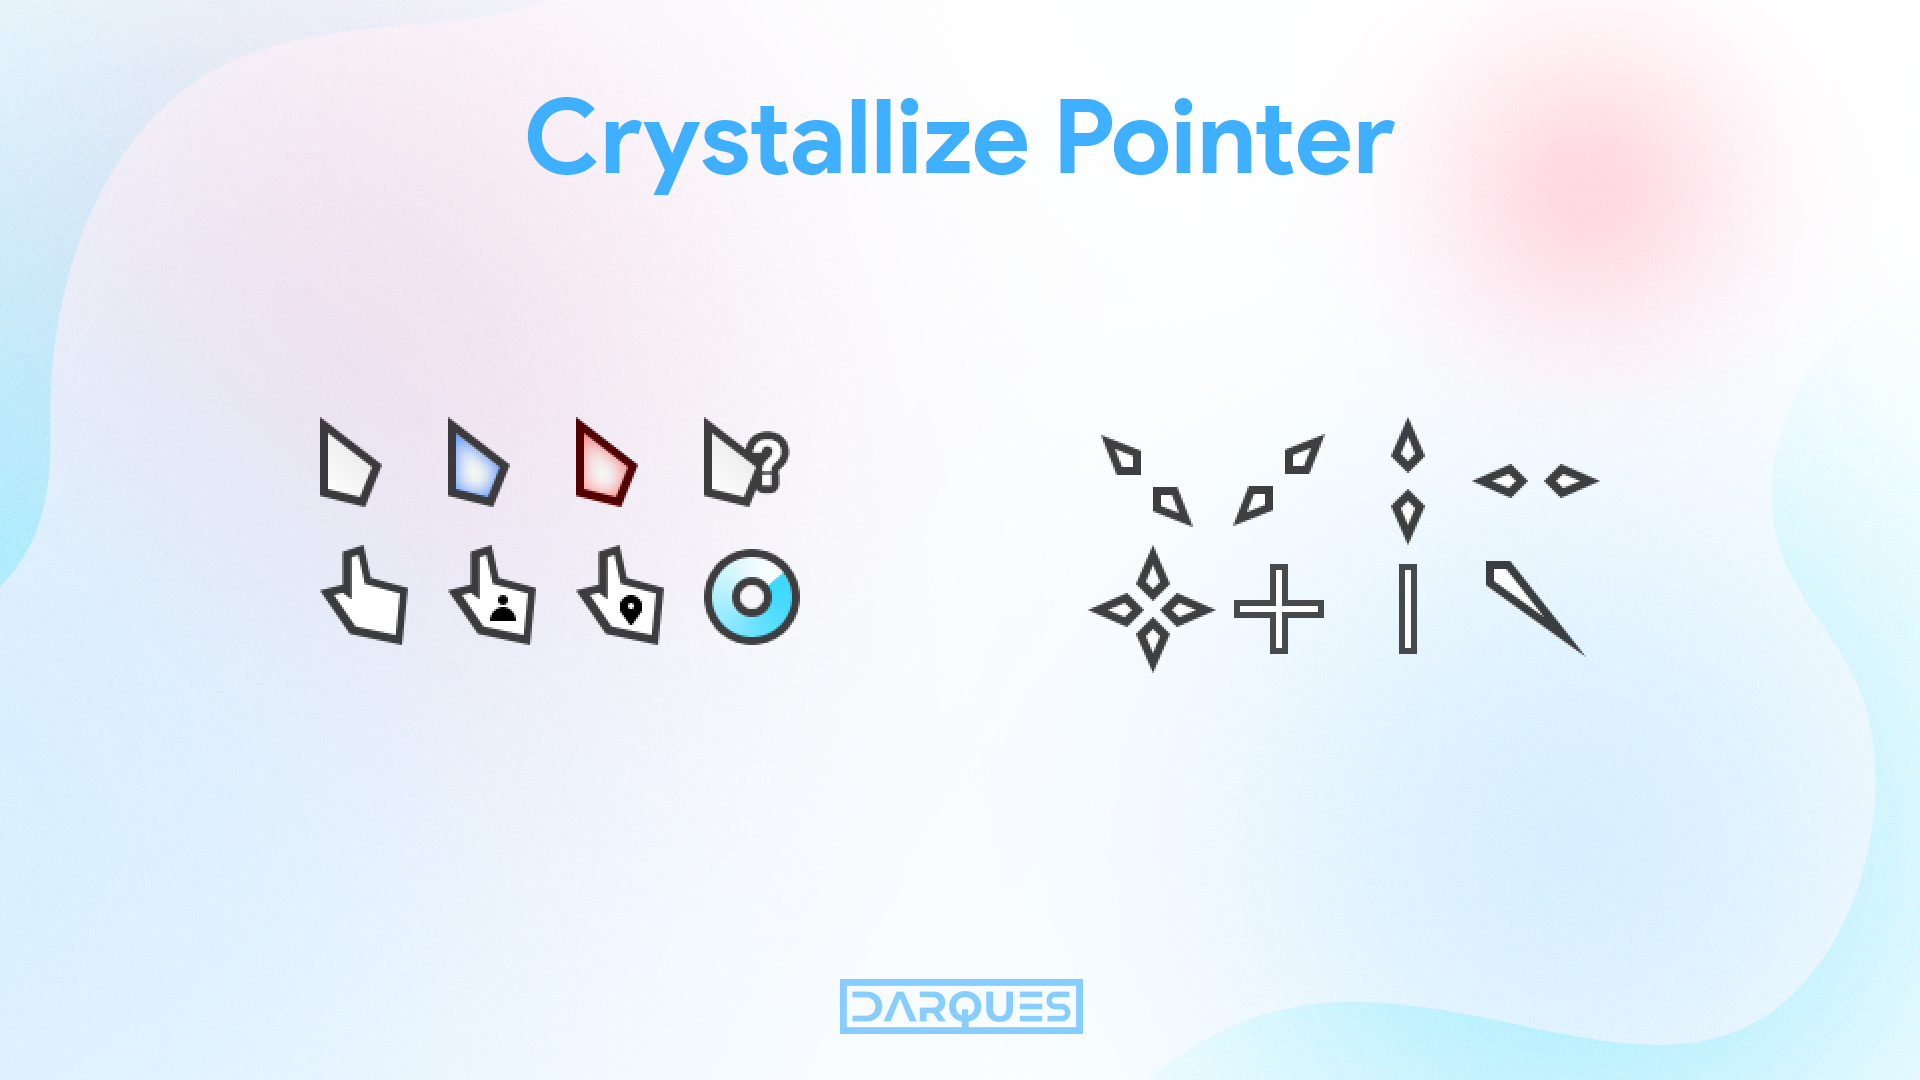 Crystallize Pointer